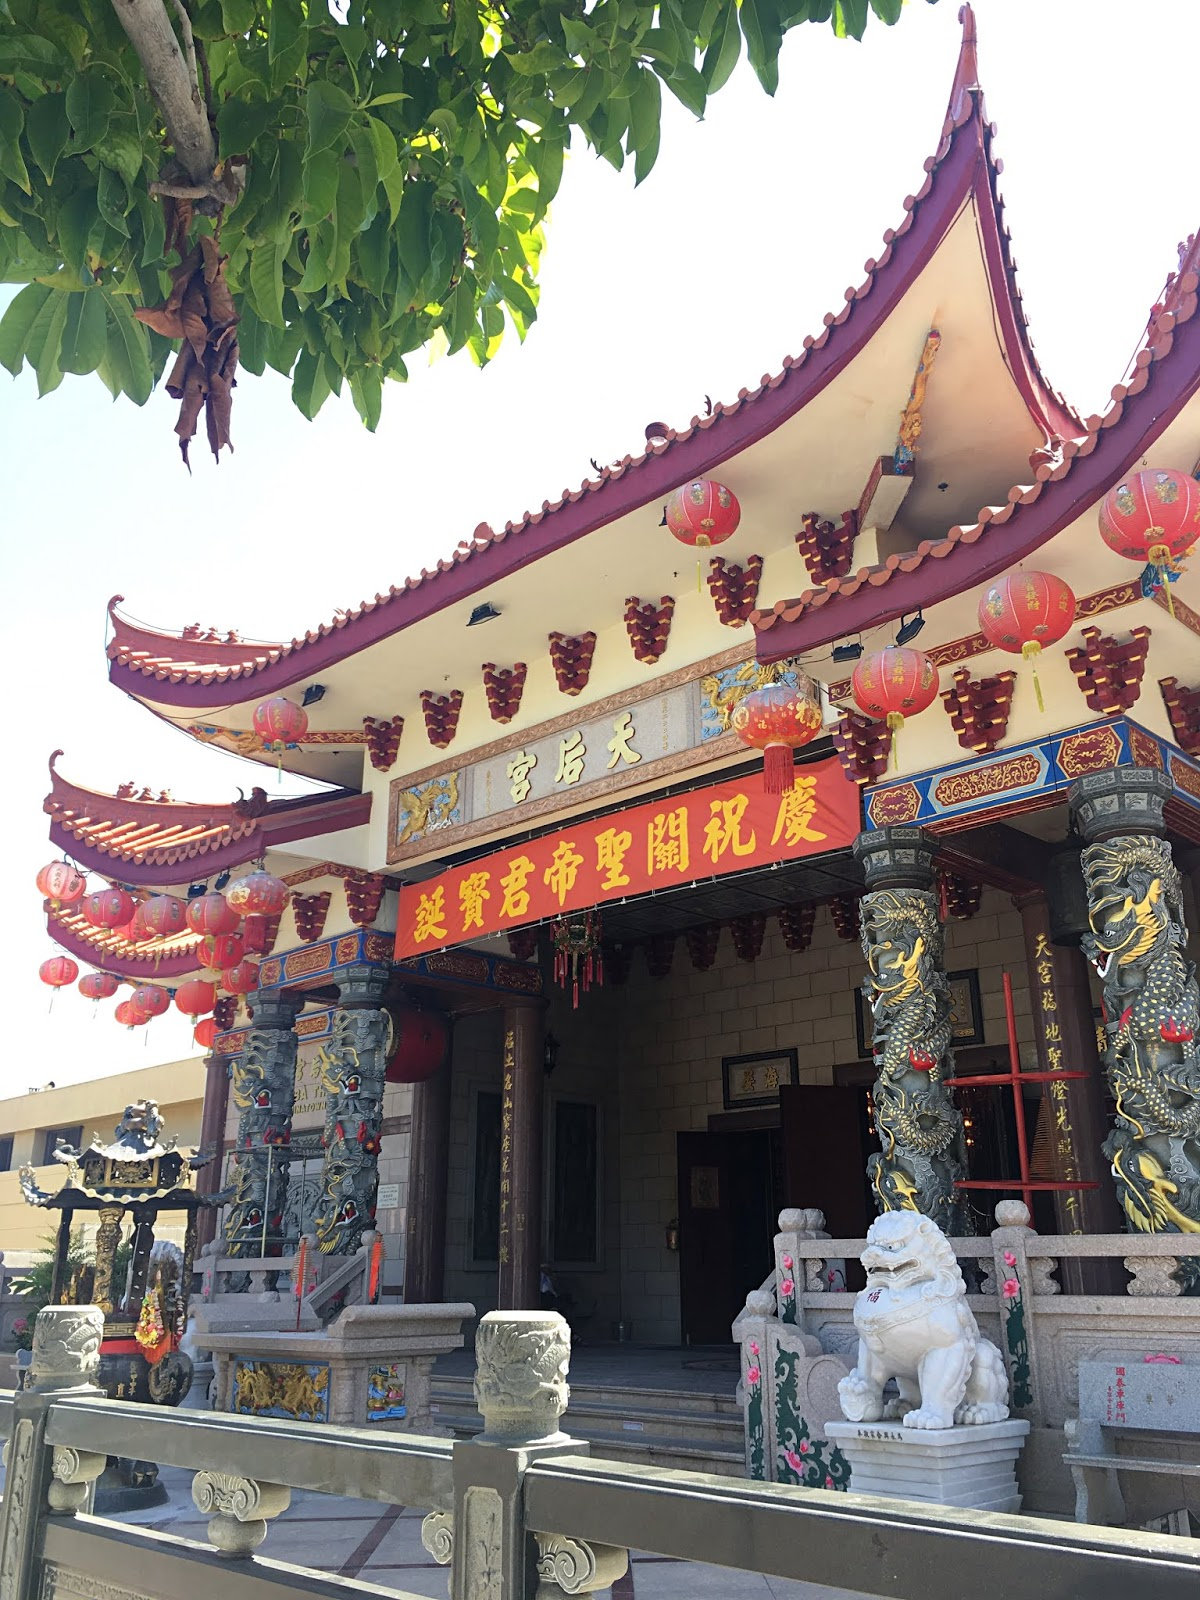 Then Hau Temple